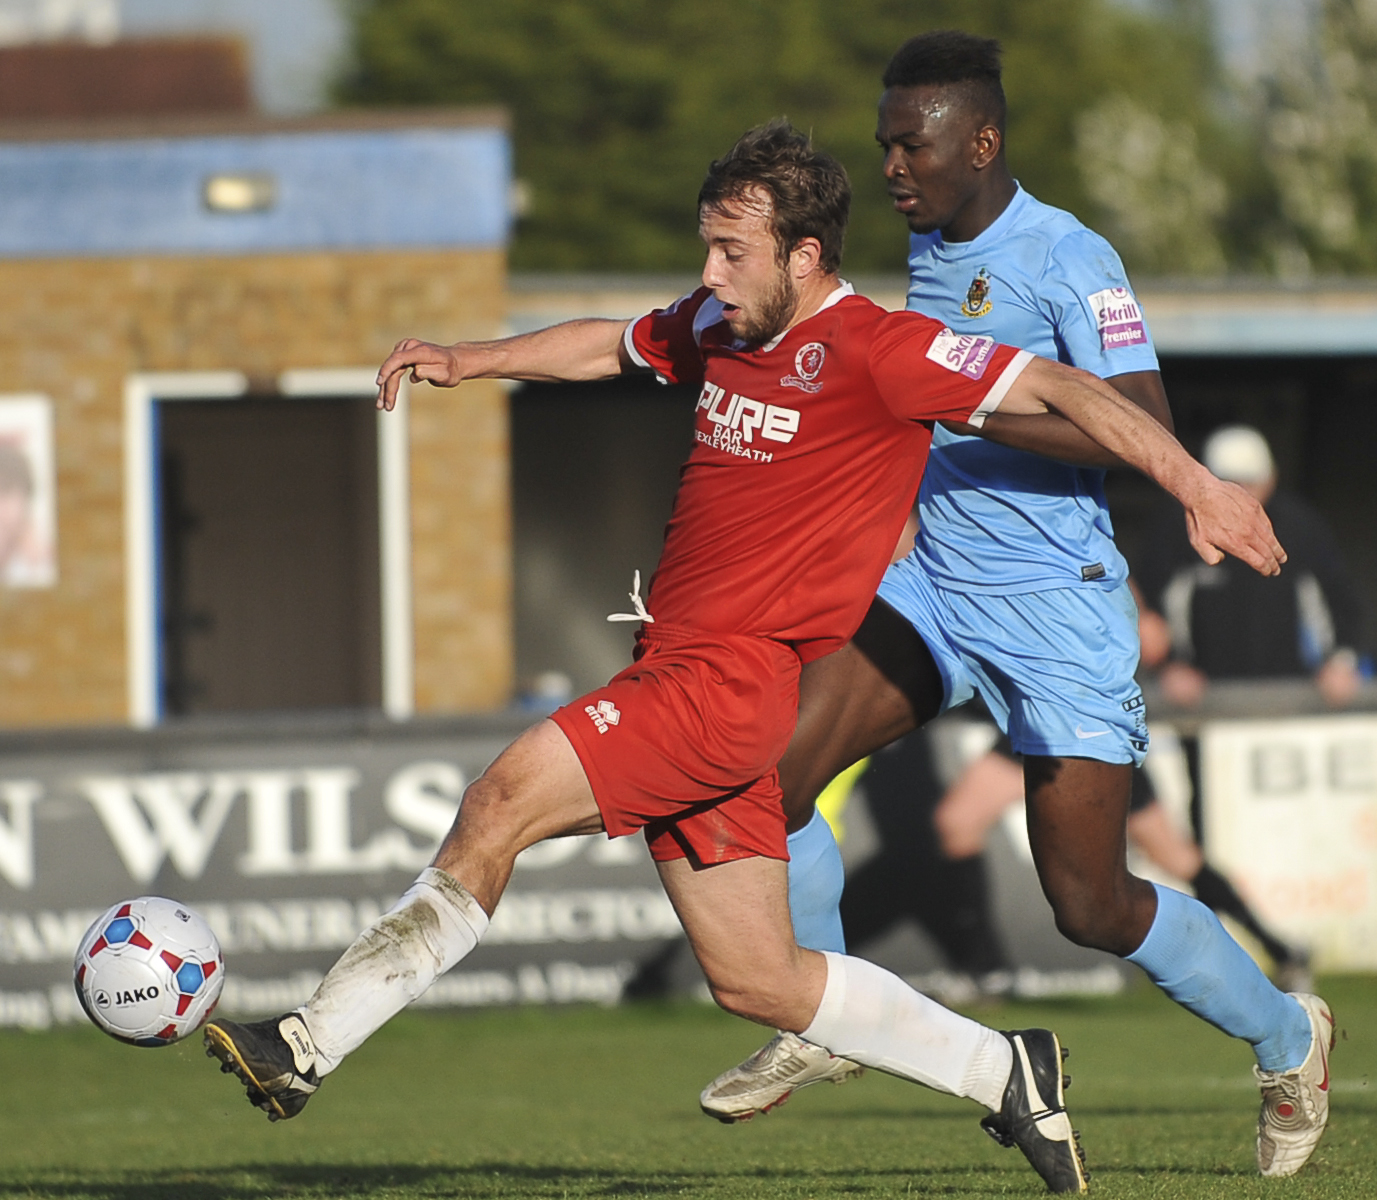 News Shopper: Gallagher scores the third goal for Welling